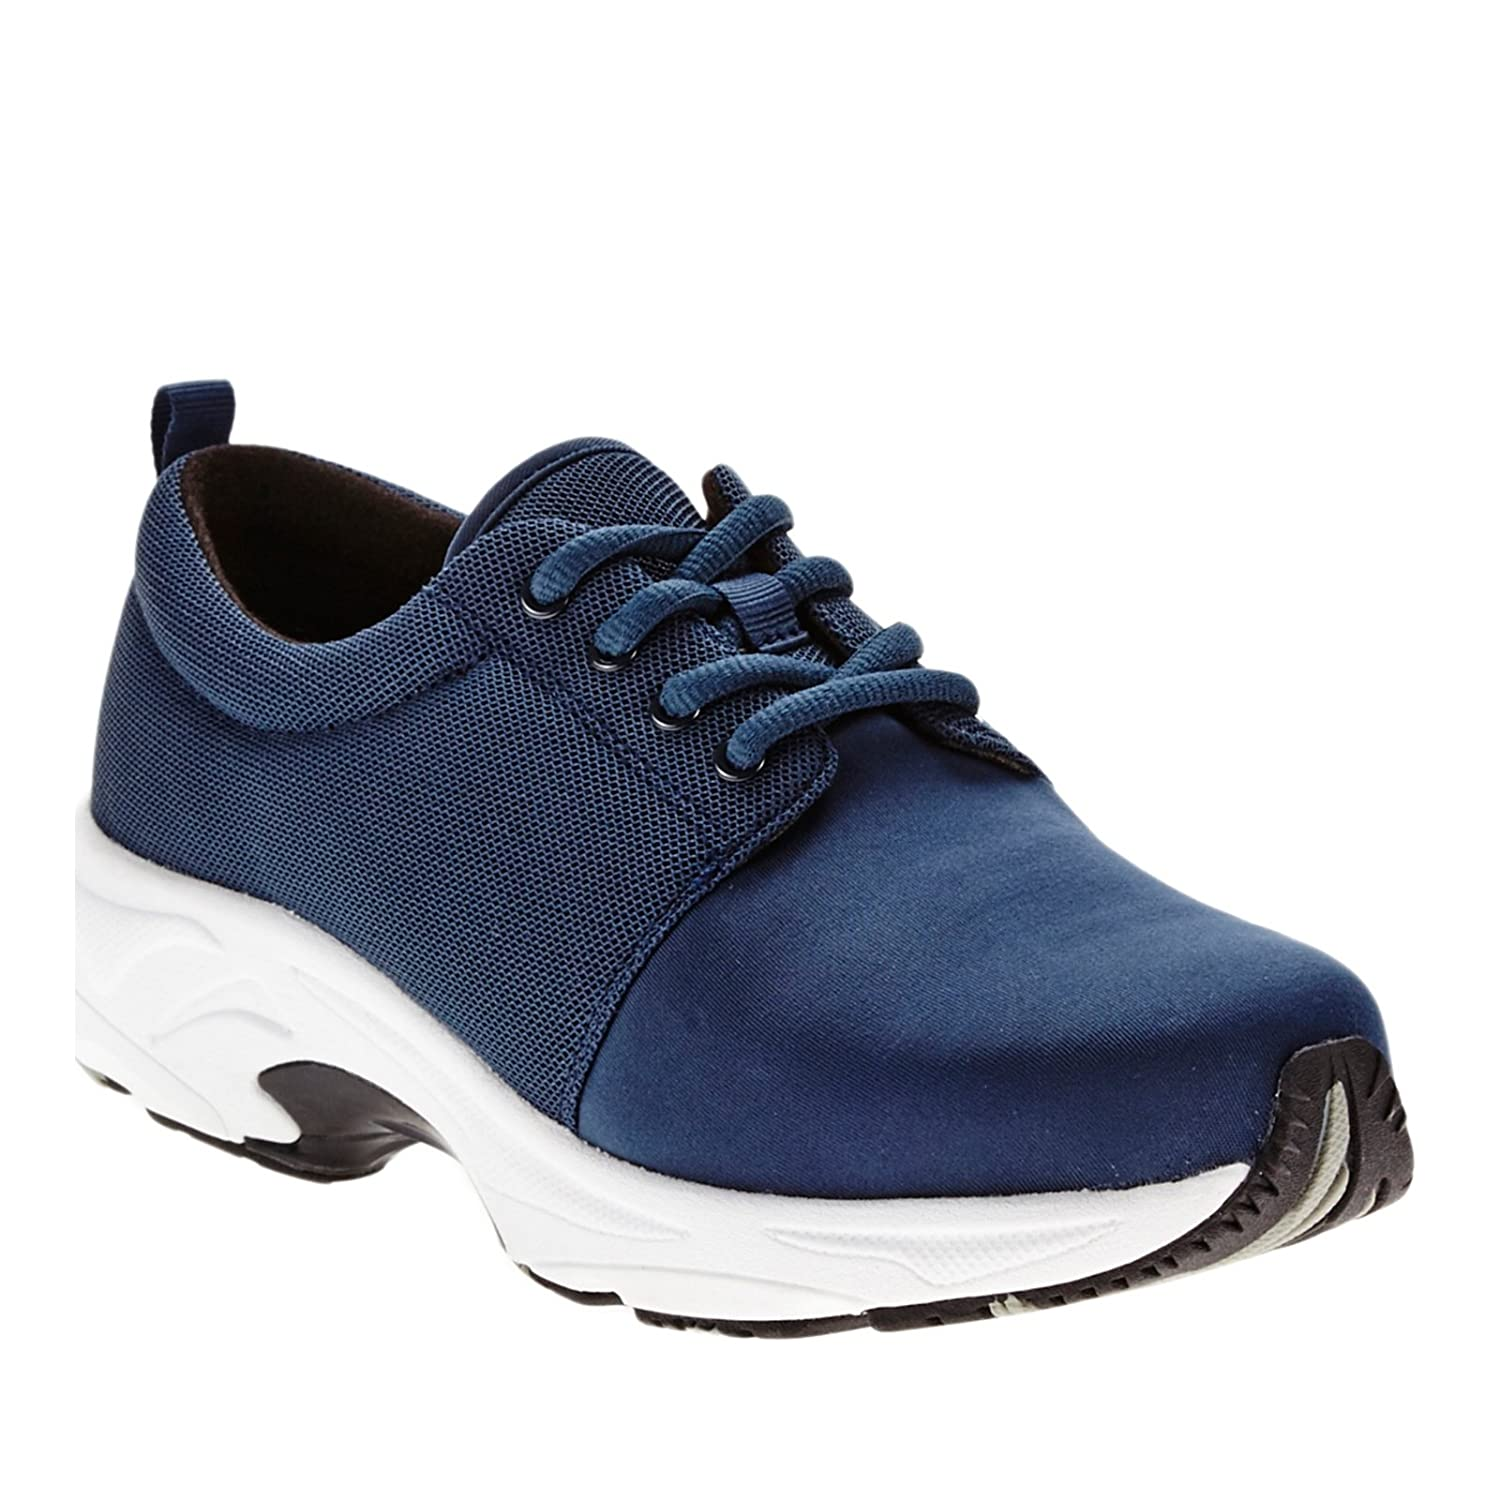 Drew Shoe Women's Excel Mesh, Rubber, Fashion Sneakers B01DJTN82A 11.5 XW US|Navy Combo